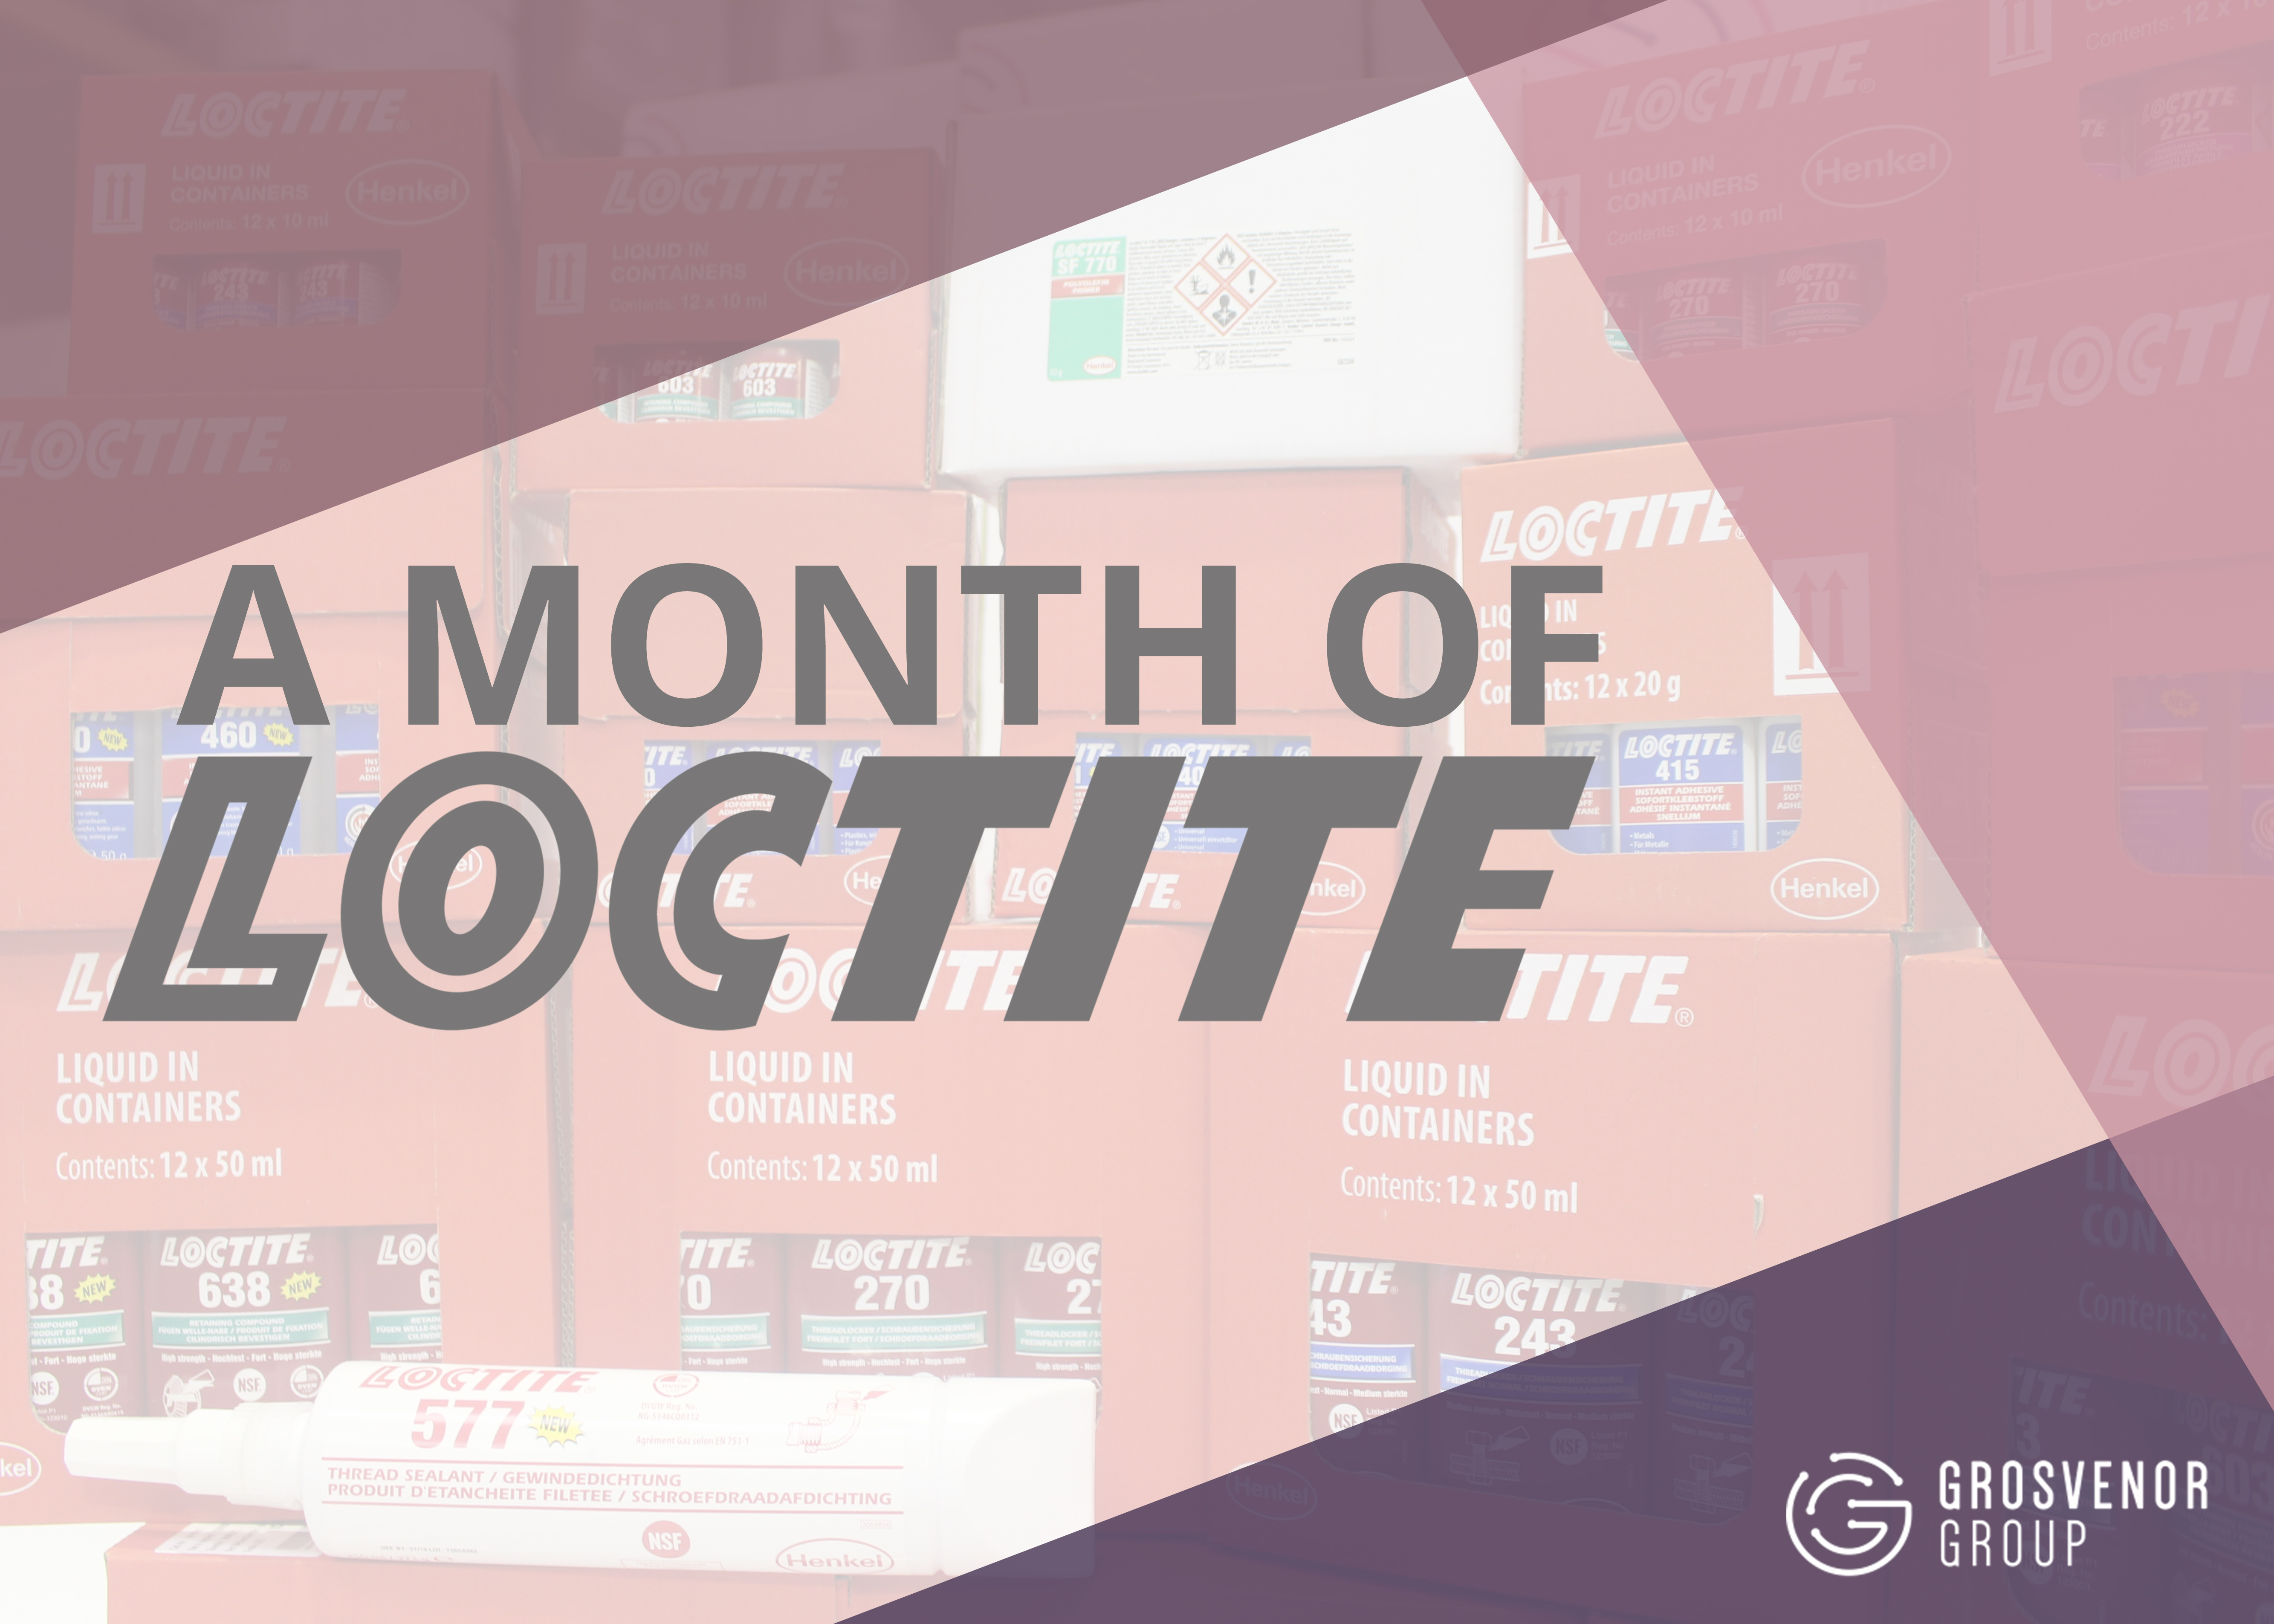 A Month of Loctite